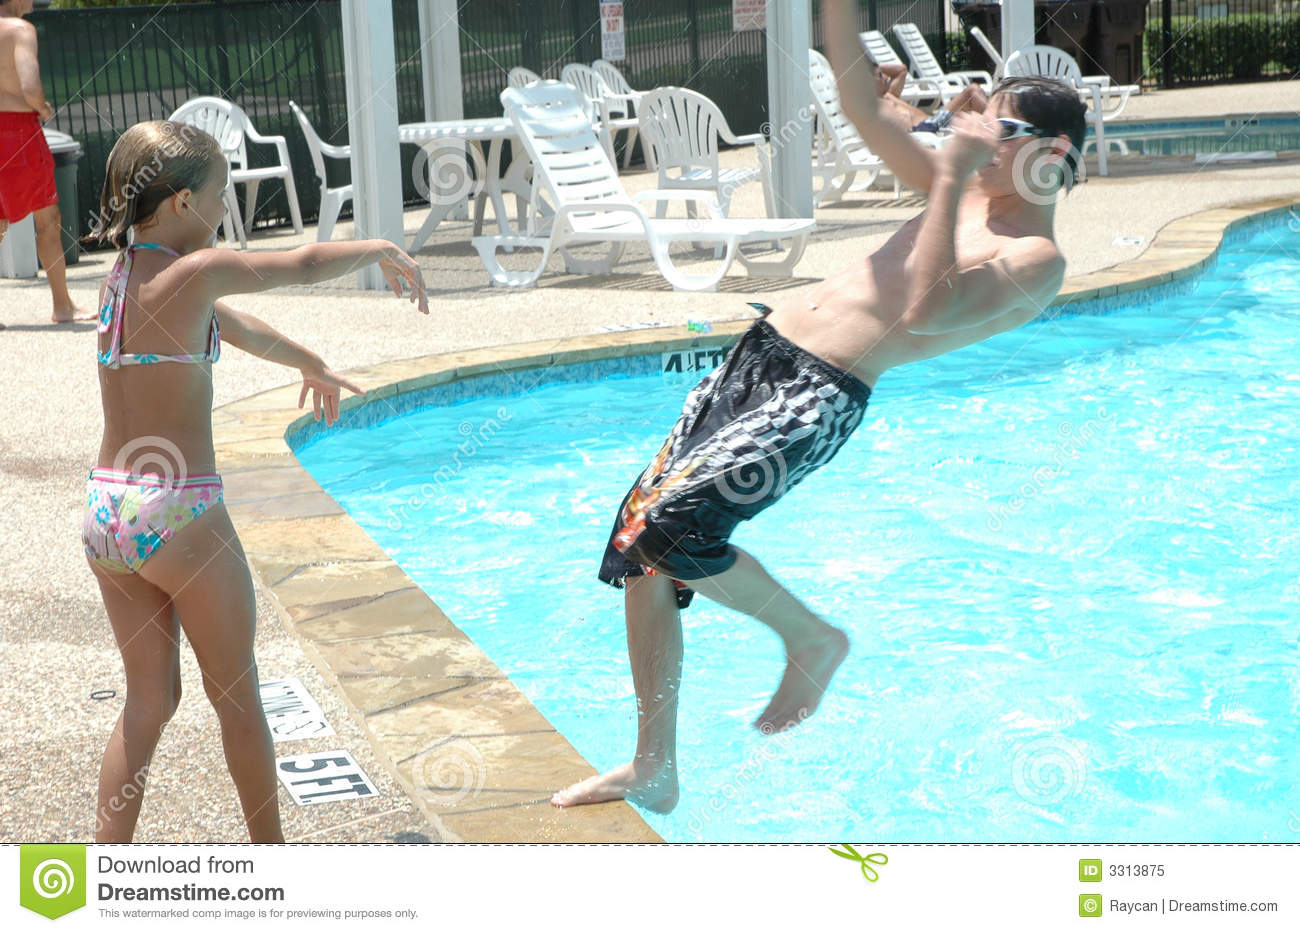 Woman pushed in pool